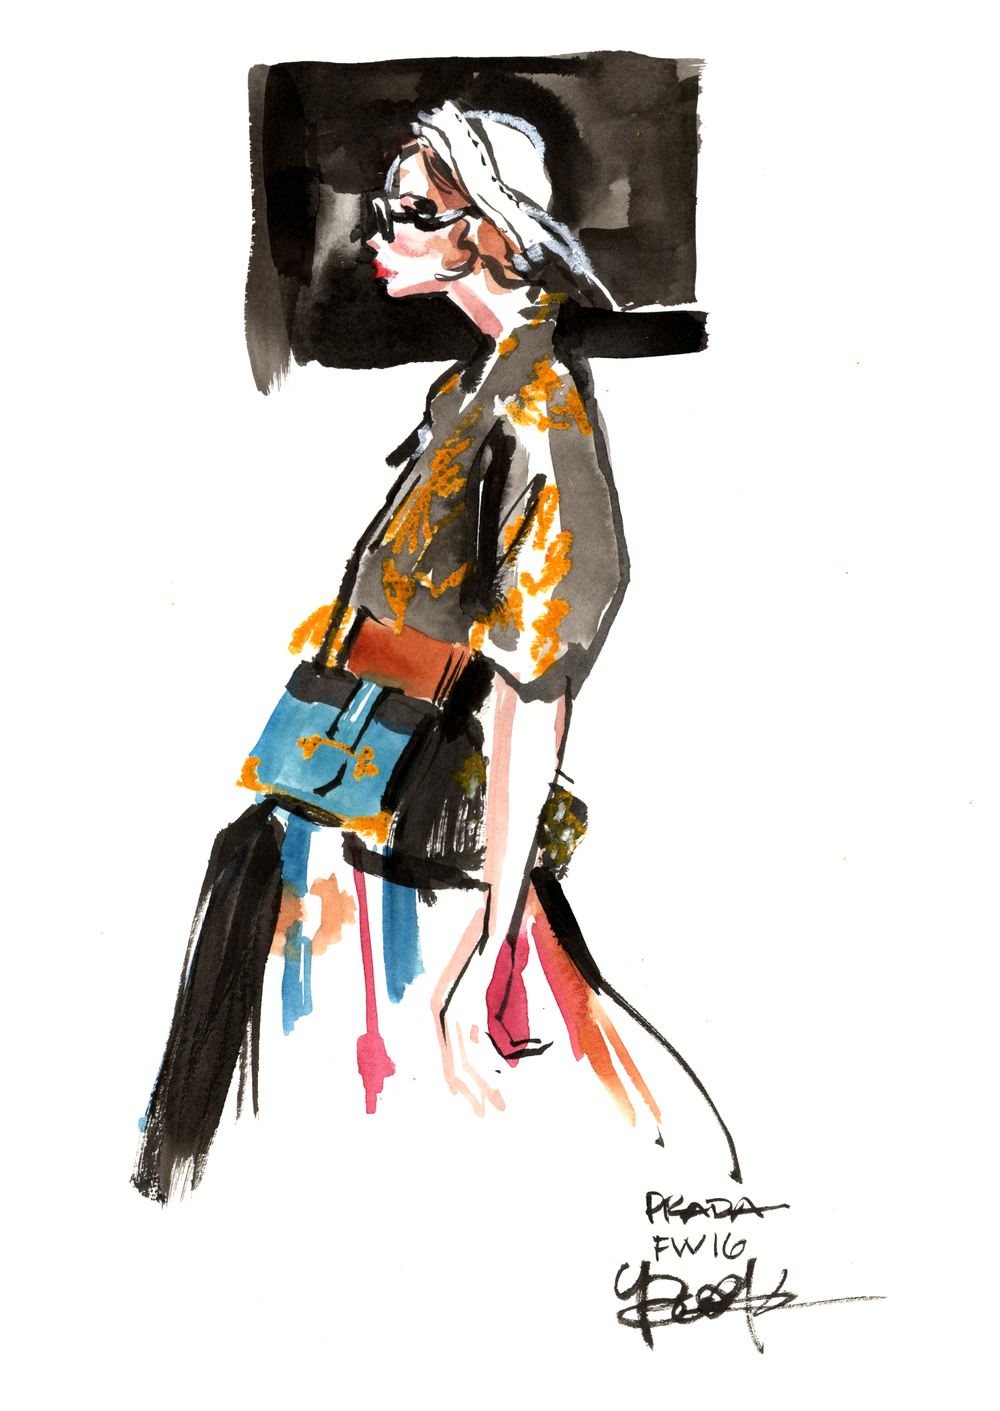 Inspired by Prada FWSS16; ink, watercolor, oil pastel.